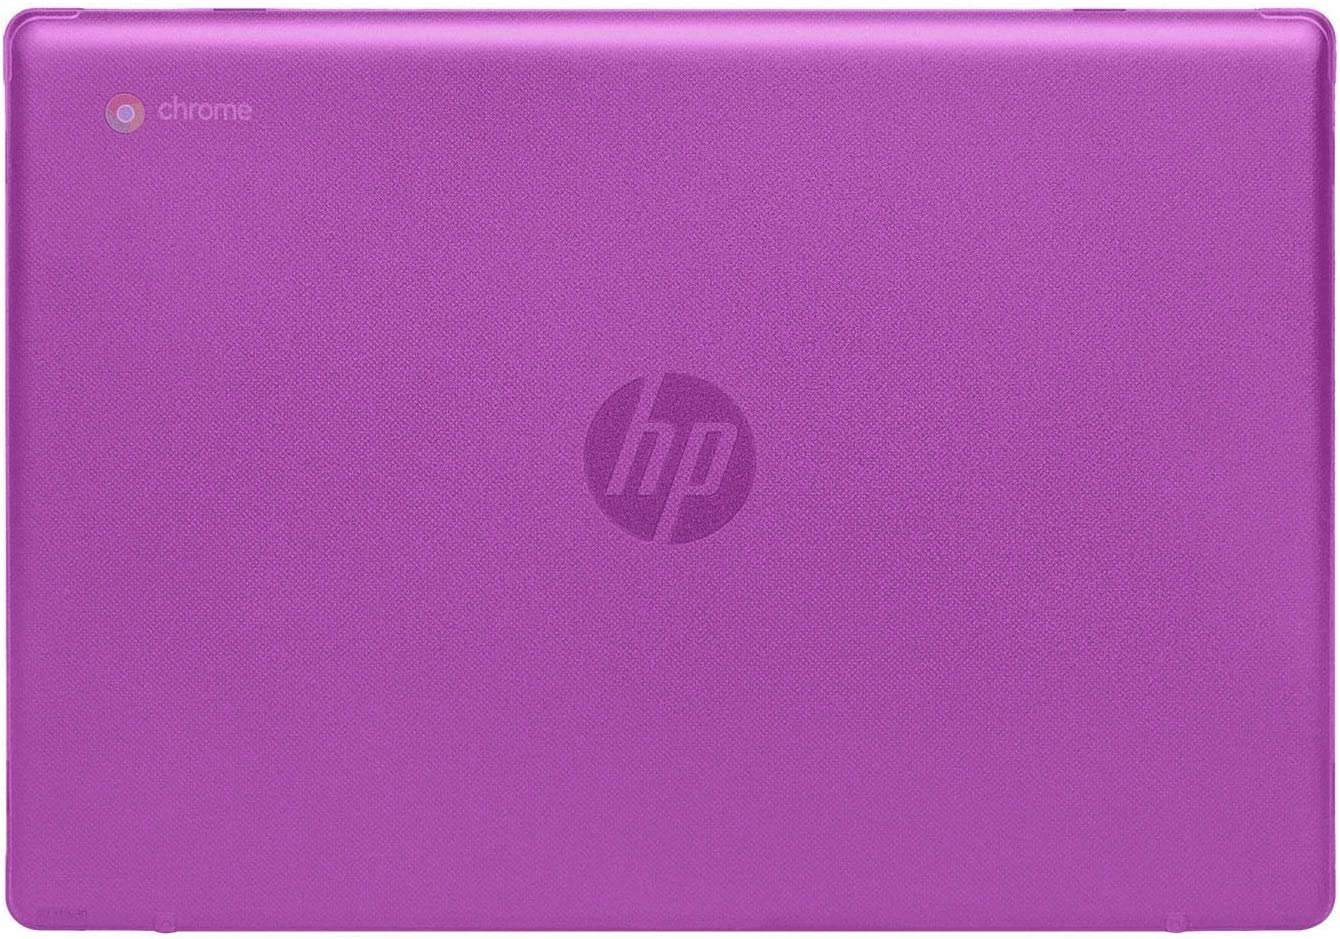 "mCover Hard Shell Case for 2020 14"" HP Chromebook 14 G6 (NOT Compatible with Older HP C14 G1 / G2 / G3 / G4/ G5 Series) laptops (Purple)"